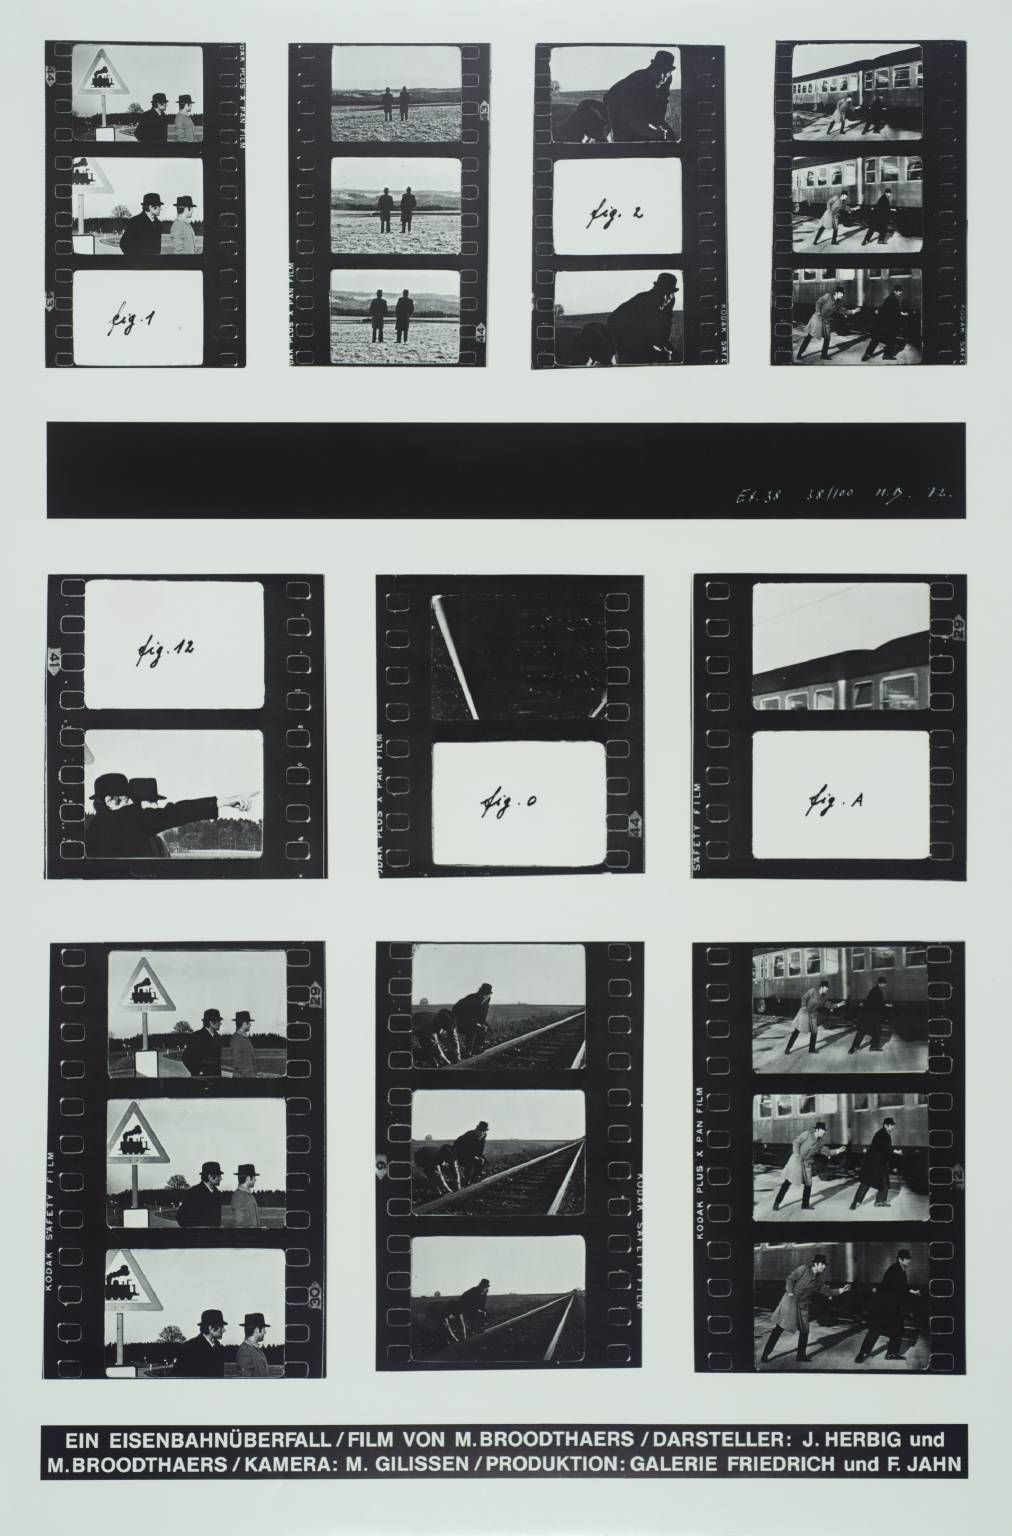 Marcel Broodthaers 'A Railway Robbery', 1972 © DACS, 2014Magritte, who gave him a copy of Mallarmé's Un Coup de Dés. (Magritte's paintings with words, in which there is a contradiction between the painted word and the painted object, were later a crucial influence on him). Started in 1958 to publish articles illustrated with his own photographs. At the end of 1963 decided to become an artist and began to make objects.